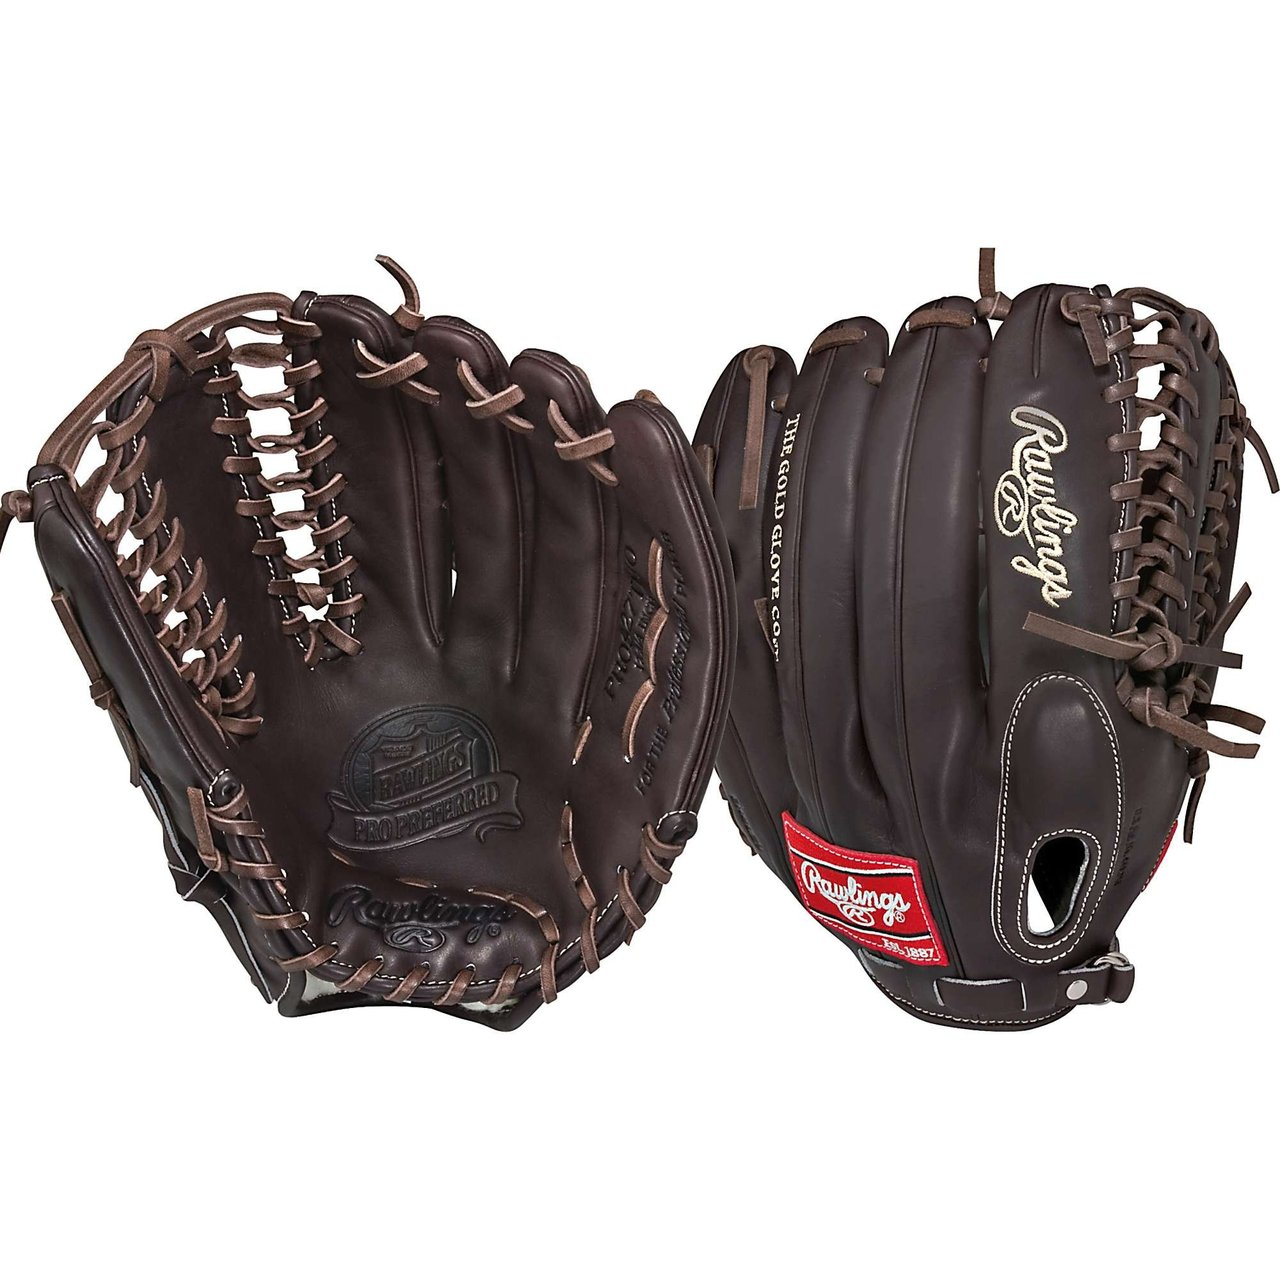 rawlings-pros27tmo-pro-preferred-mocha-12-75-inch-baseball-glove-right-handed-throw PROS27TMO-Right Handed Throw Rawlings New Rawlings PROS27TMO Pro Preferred Mocha 12.75 inch Baseball Glove Right Handed